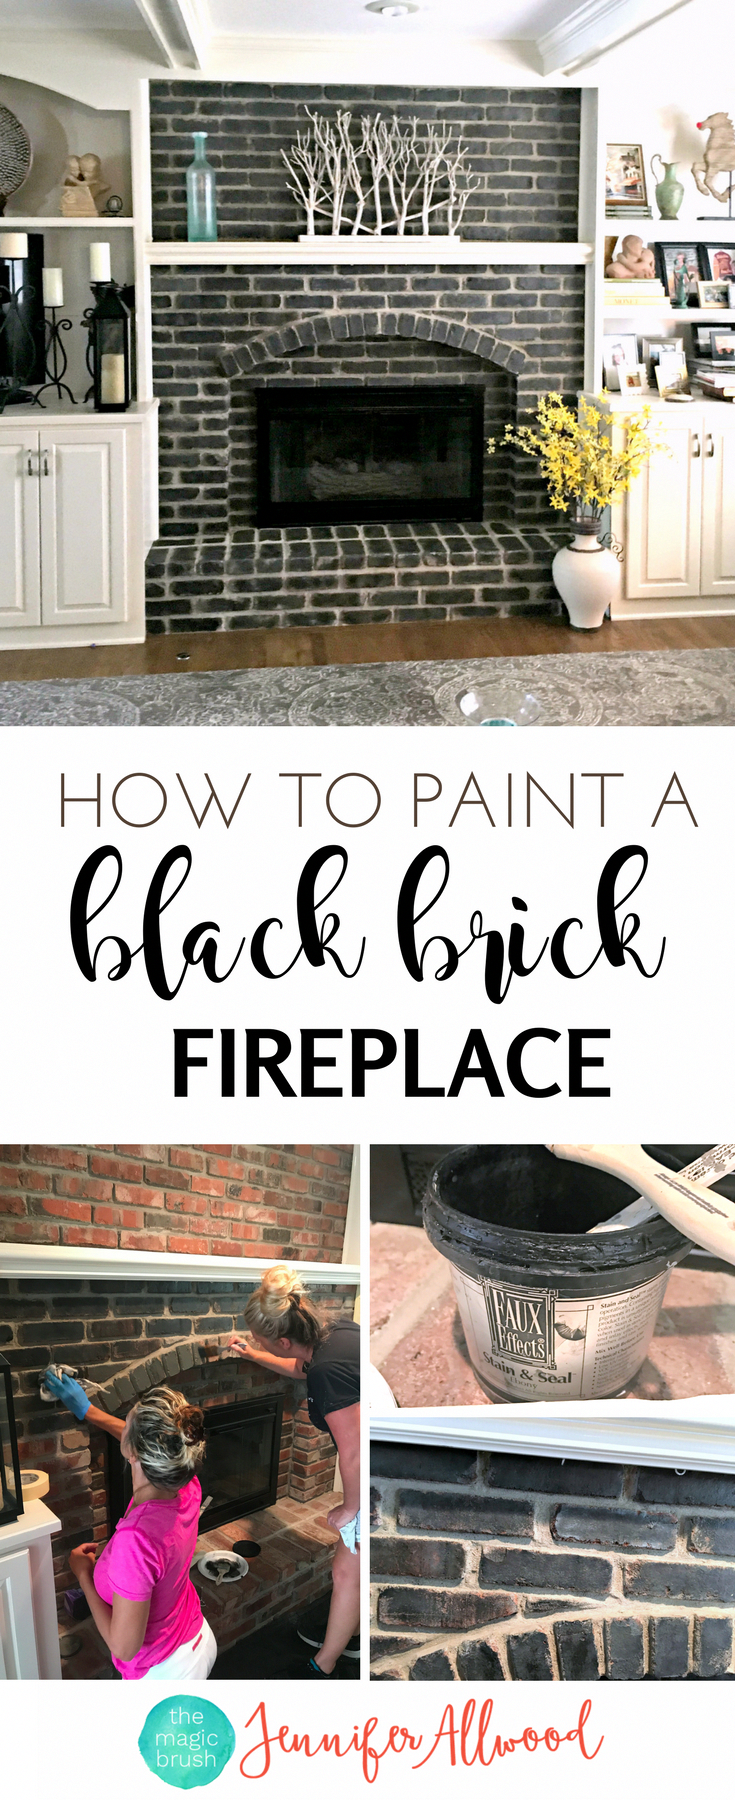 How to make a Painted Black Brick Fireplace Jennifer Allwood | Fireplace Makeover | DIY Fireplace Ideas #homeremodelingdiy #fireplacemakeoverdiy How to make a Painted Black Brick Fireplace Jennifer Allwood | Fireplace Makeover | DIY Fireplace Ideas #homeremodelingdiy #whitebrickfireplace